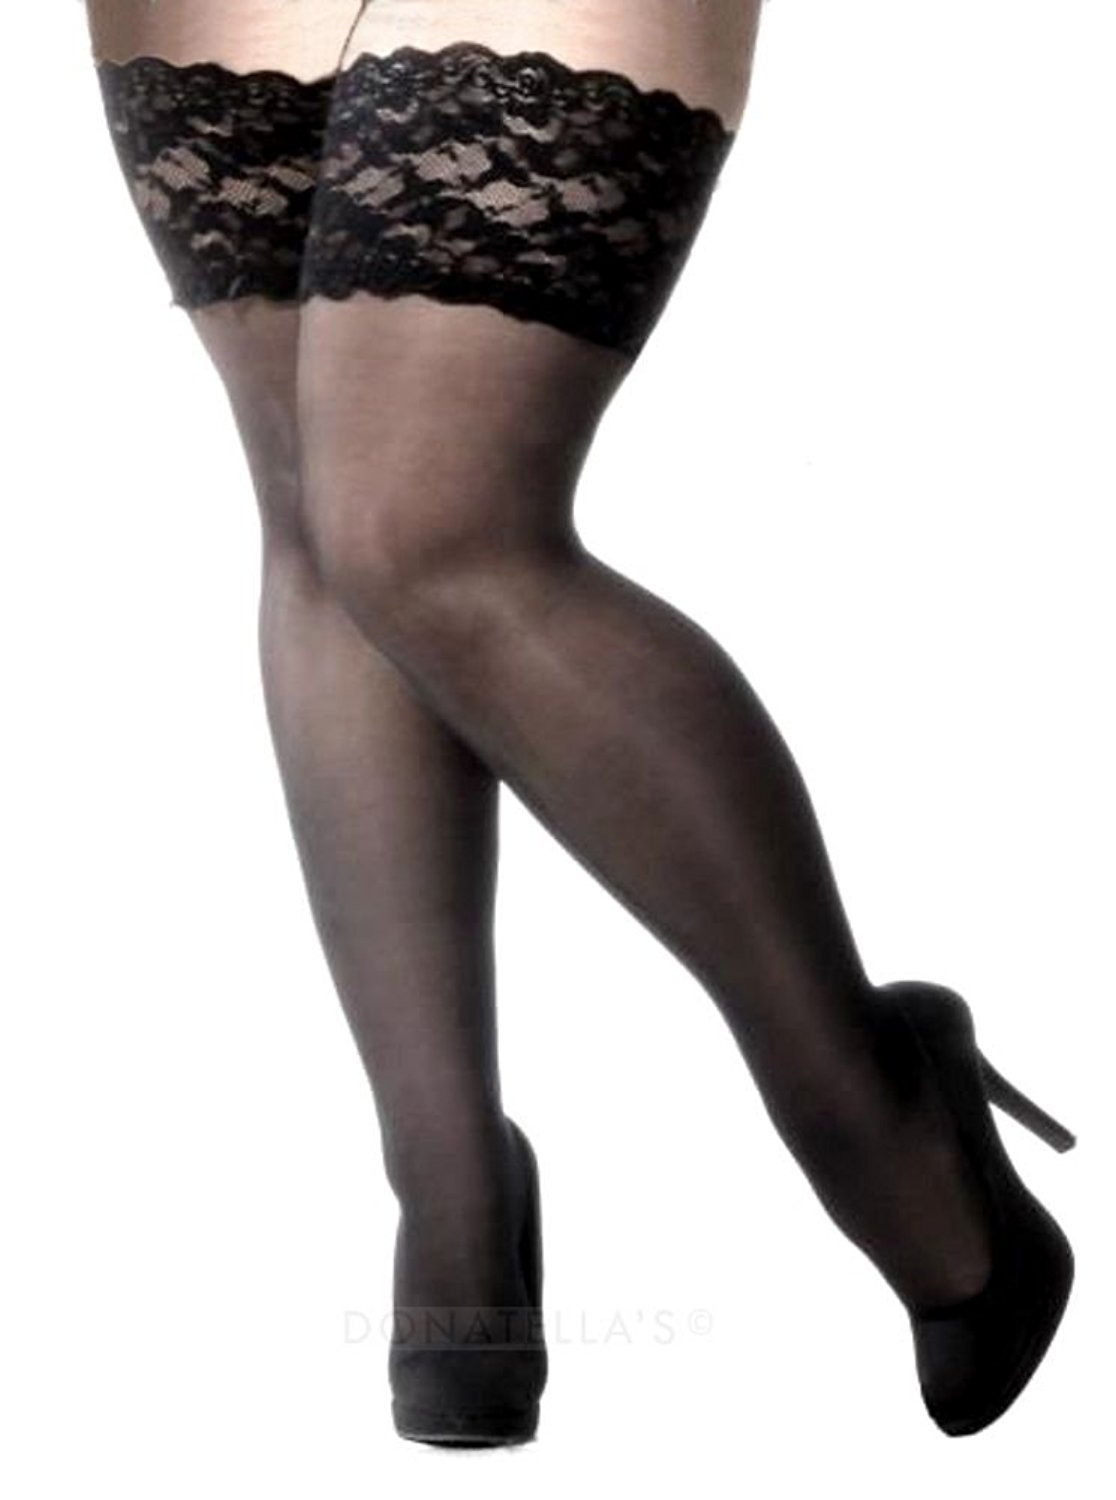 Plus Size Lace Stay Up Thigh High Stockings (5x, Black)